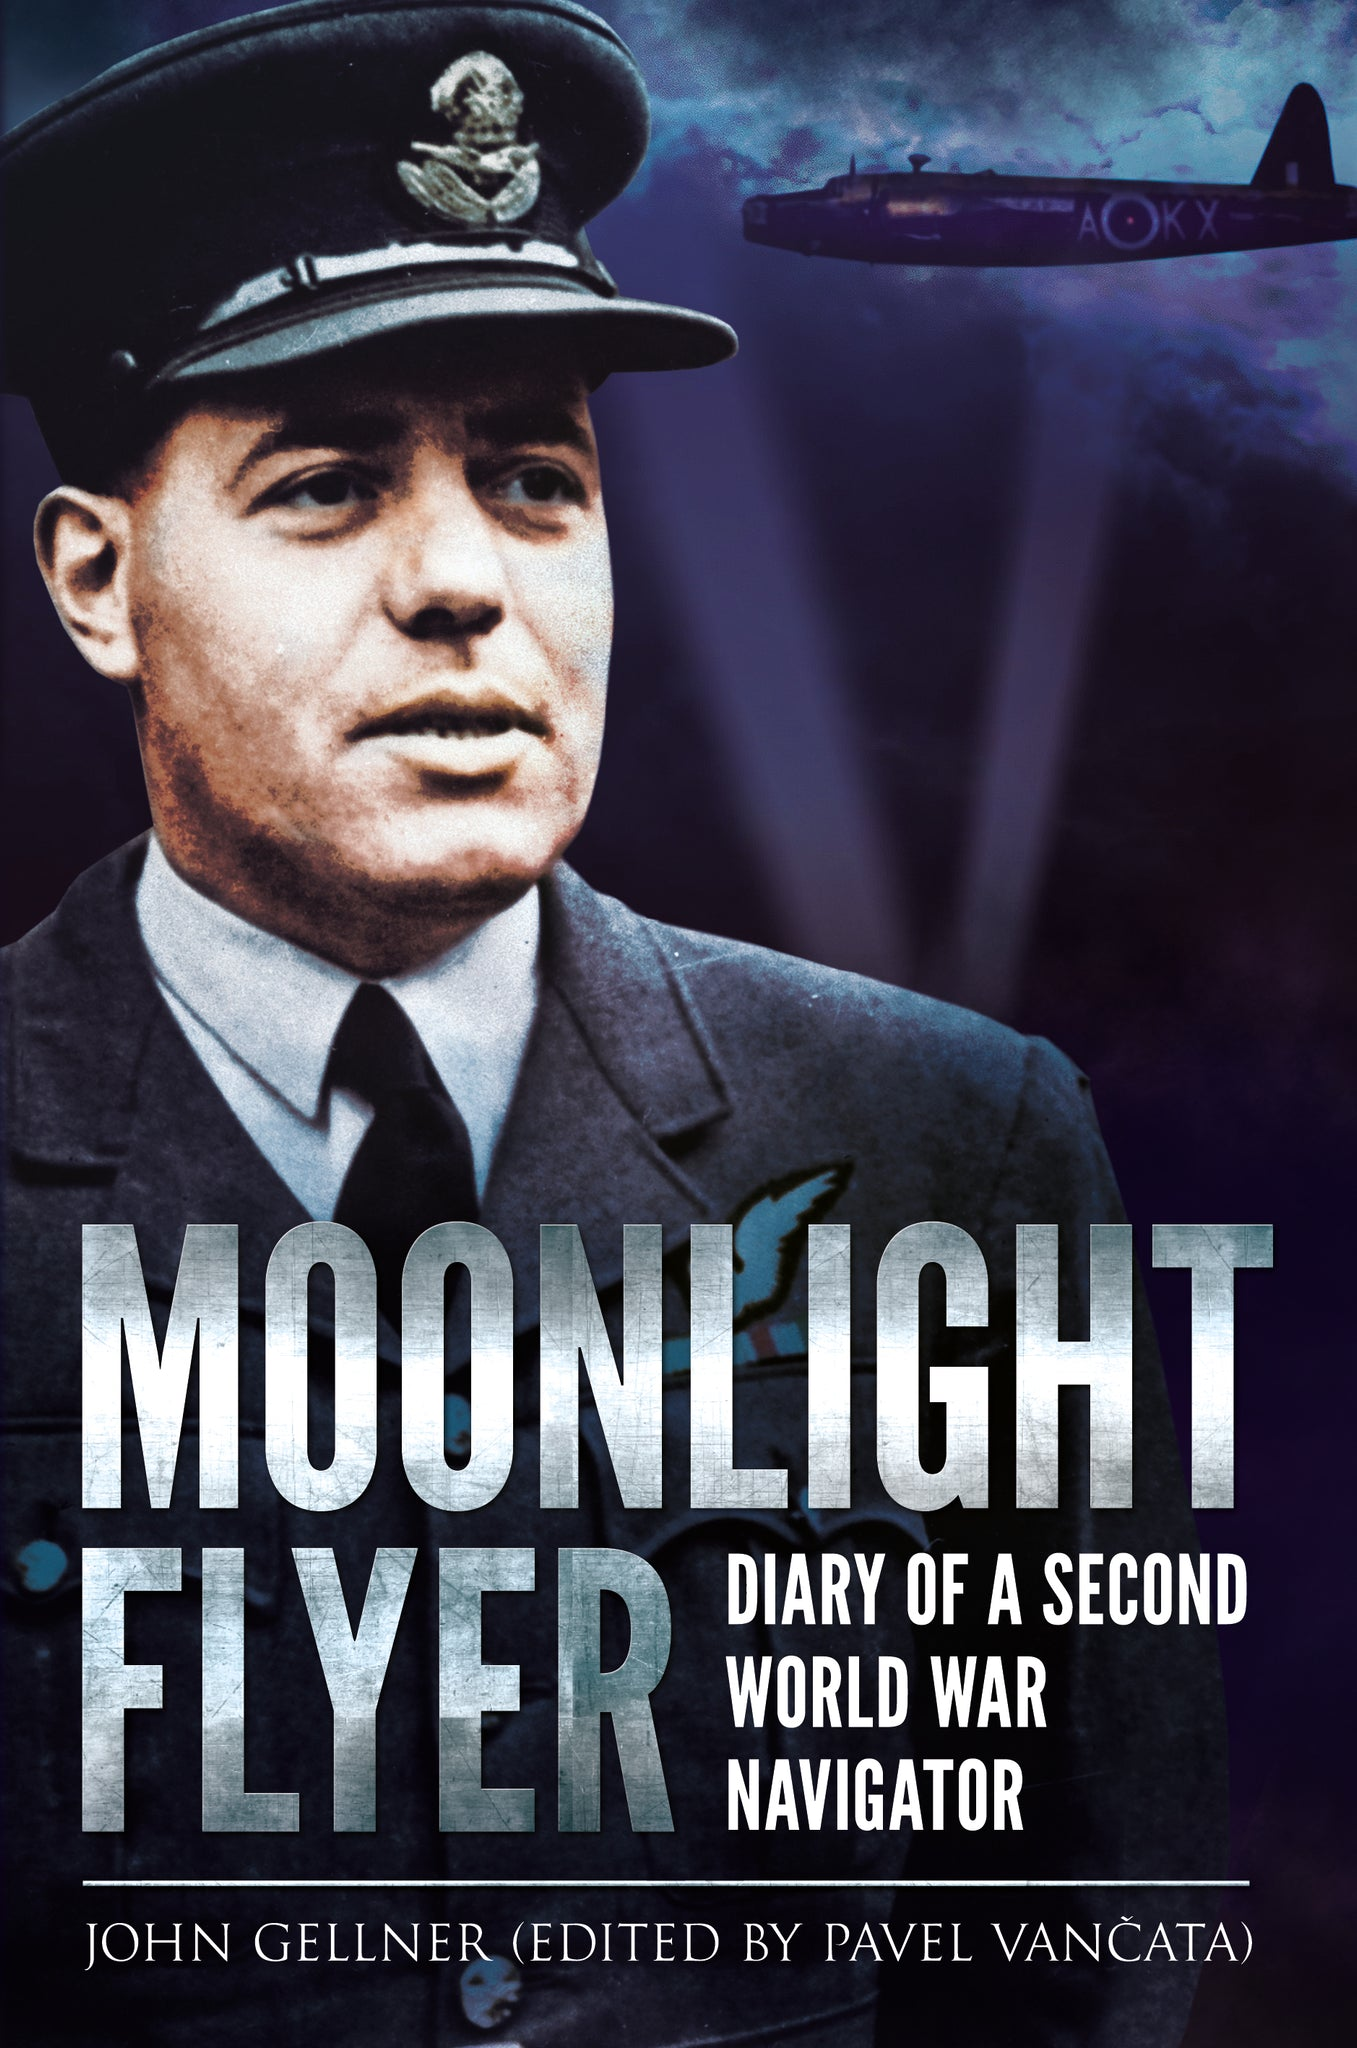 Moonlight Flyer: Diary of a Second World War Navigator